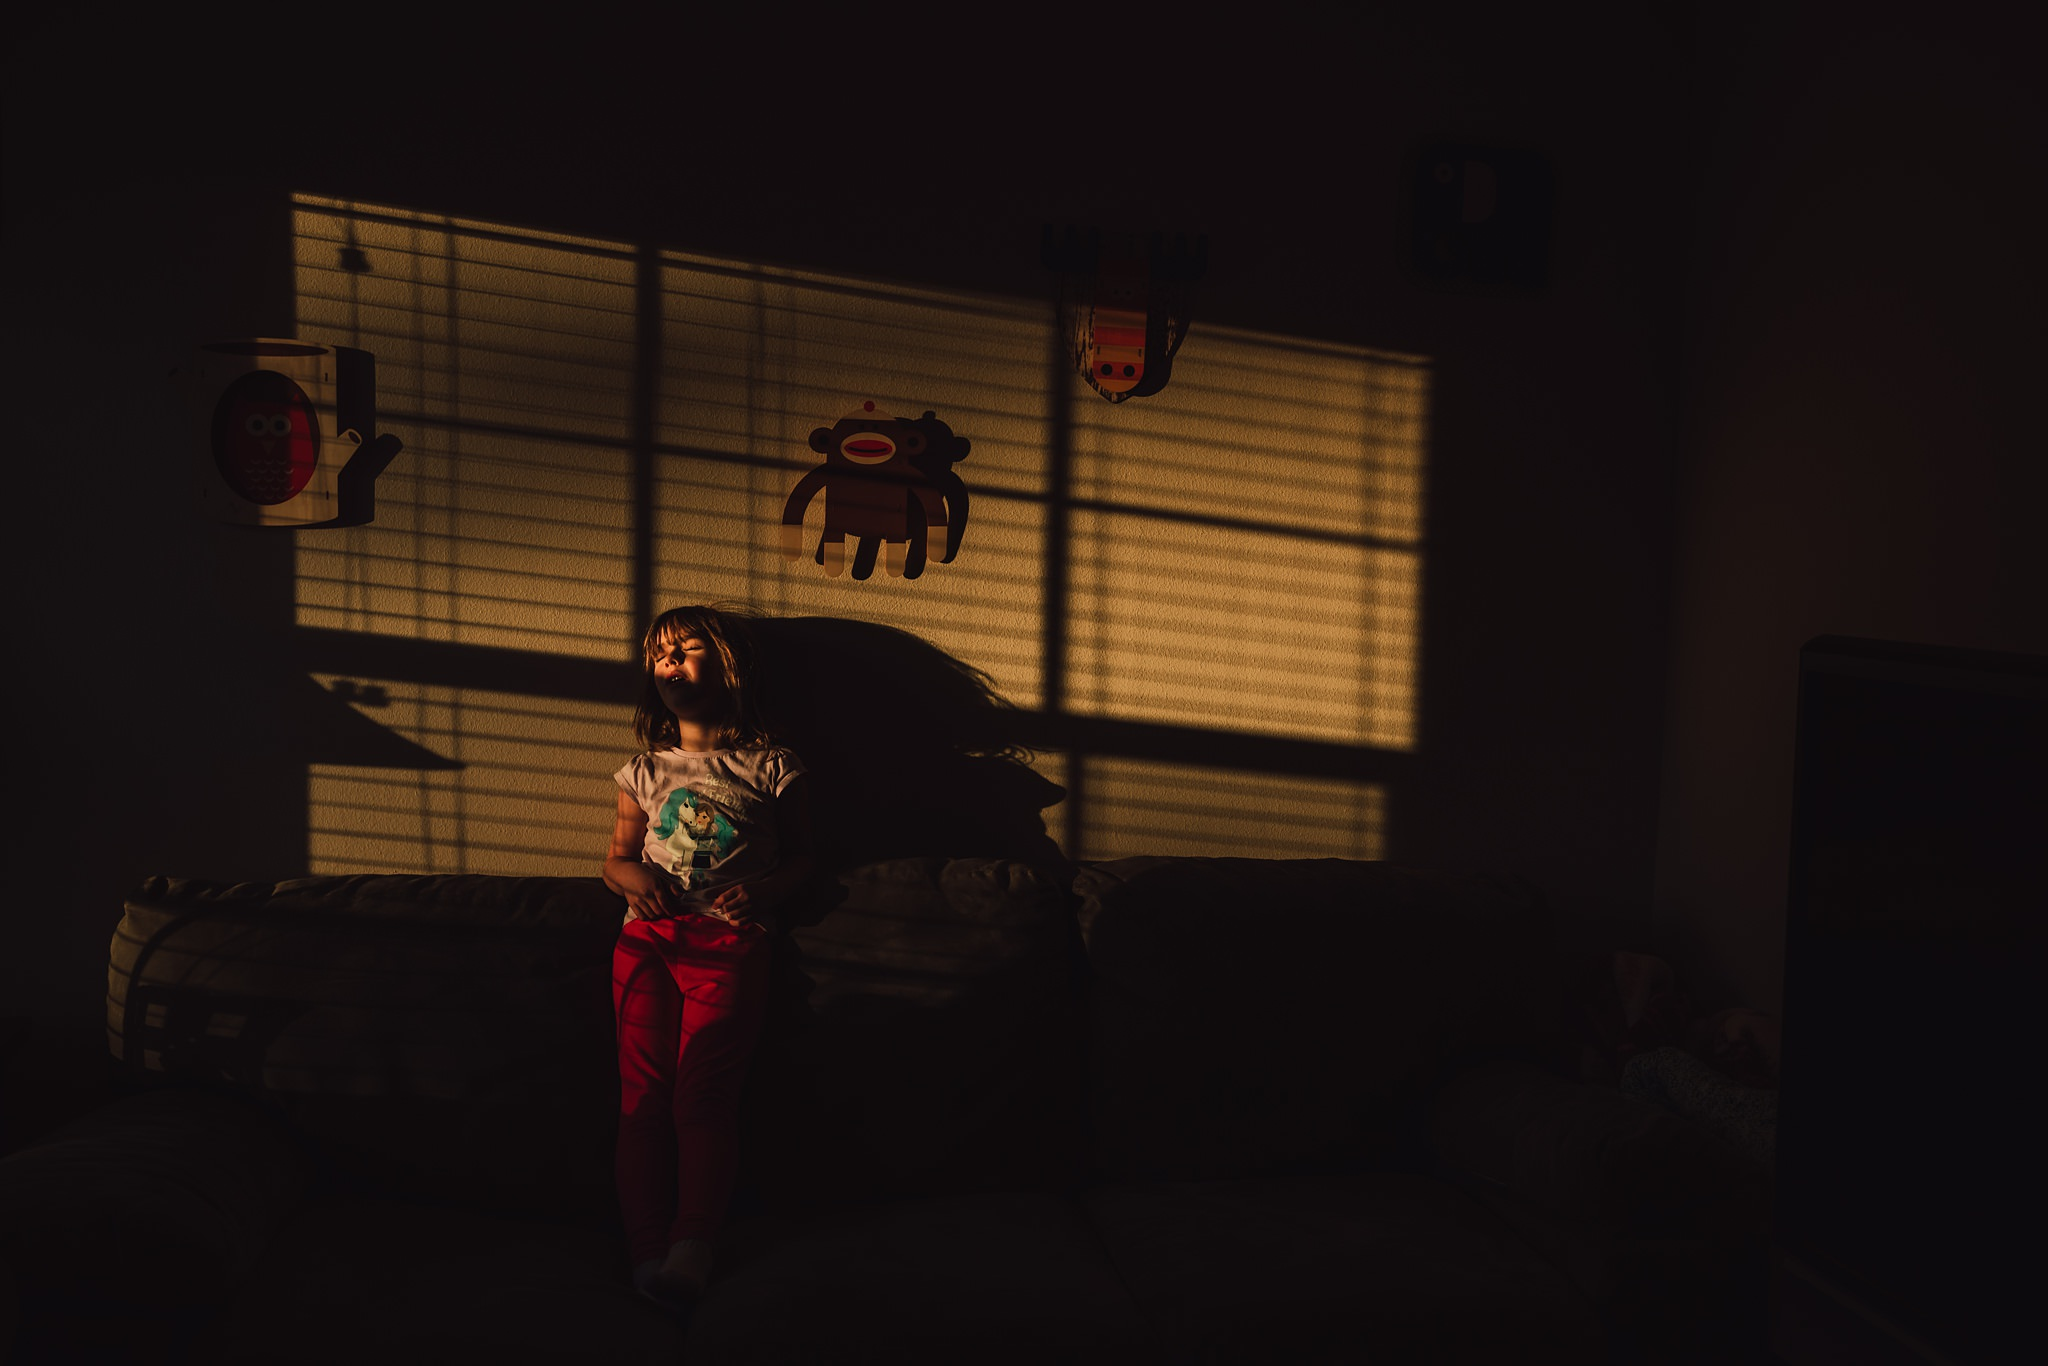 girl stands on couch in harsh window light | Whidbey Island family photographer